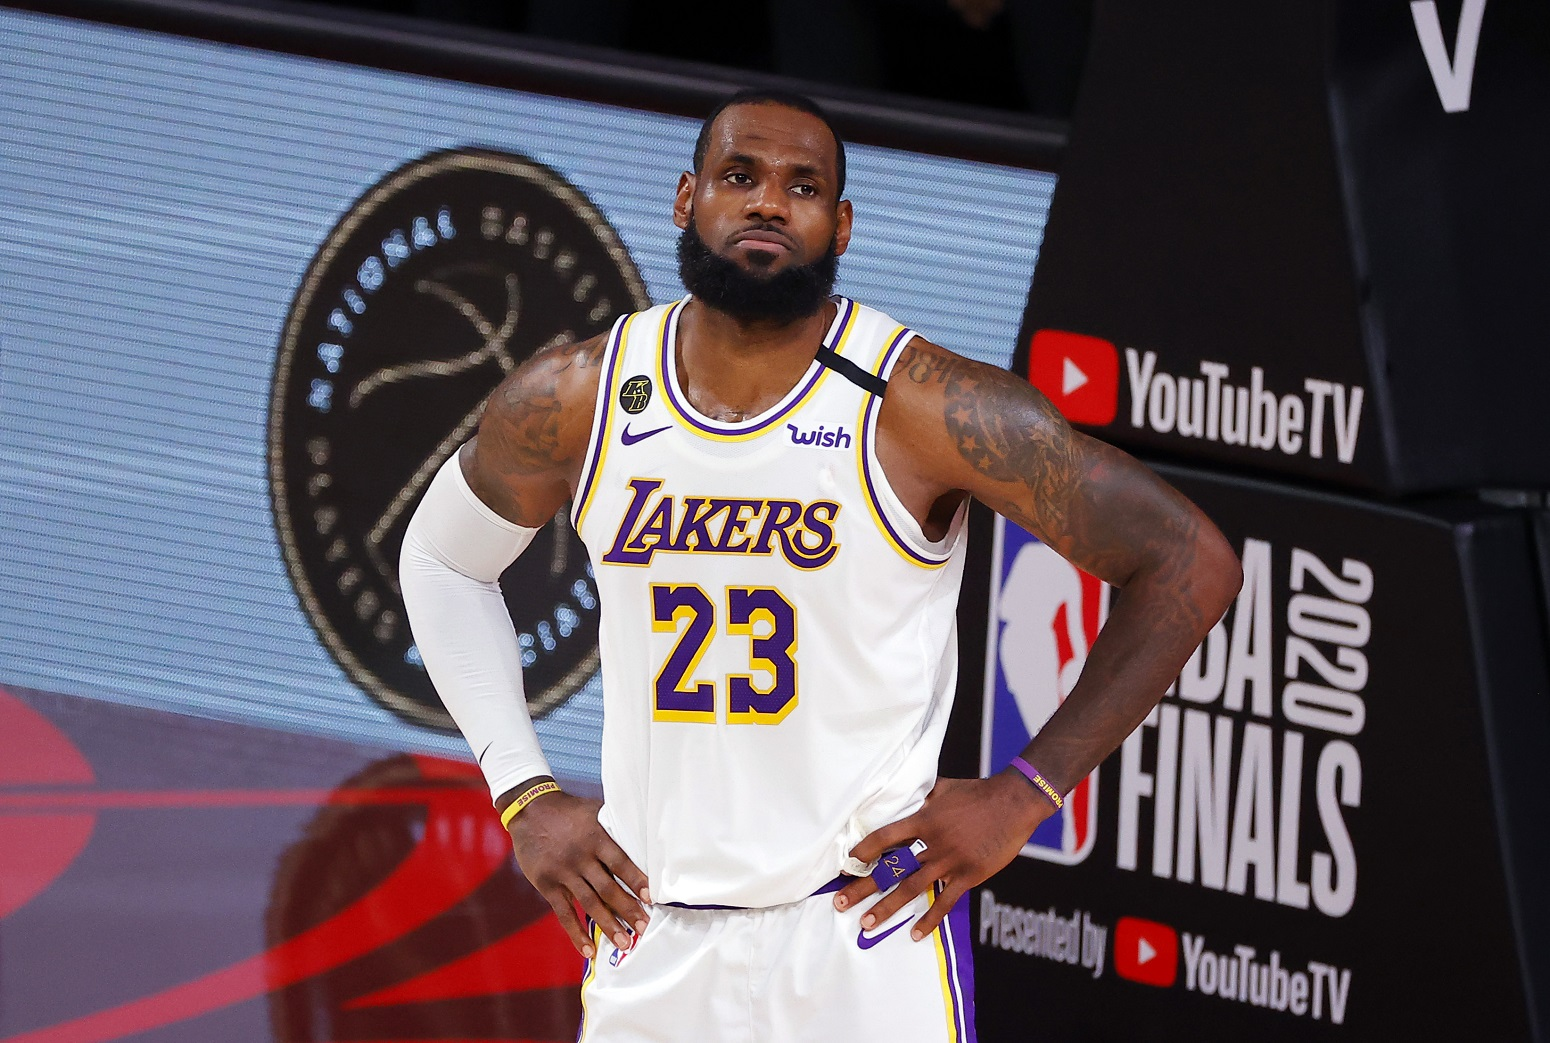 LeBron James huge honor off the court